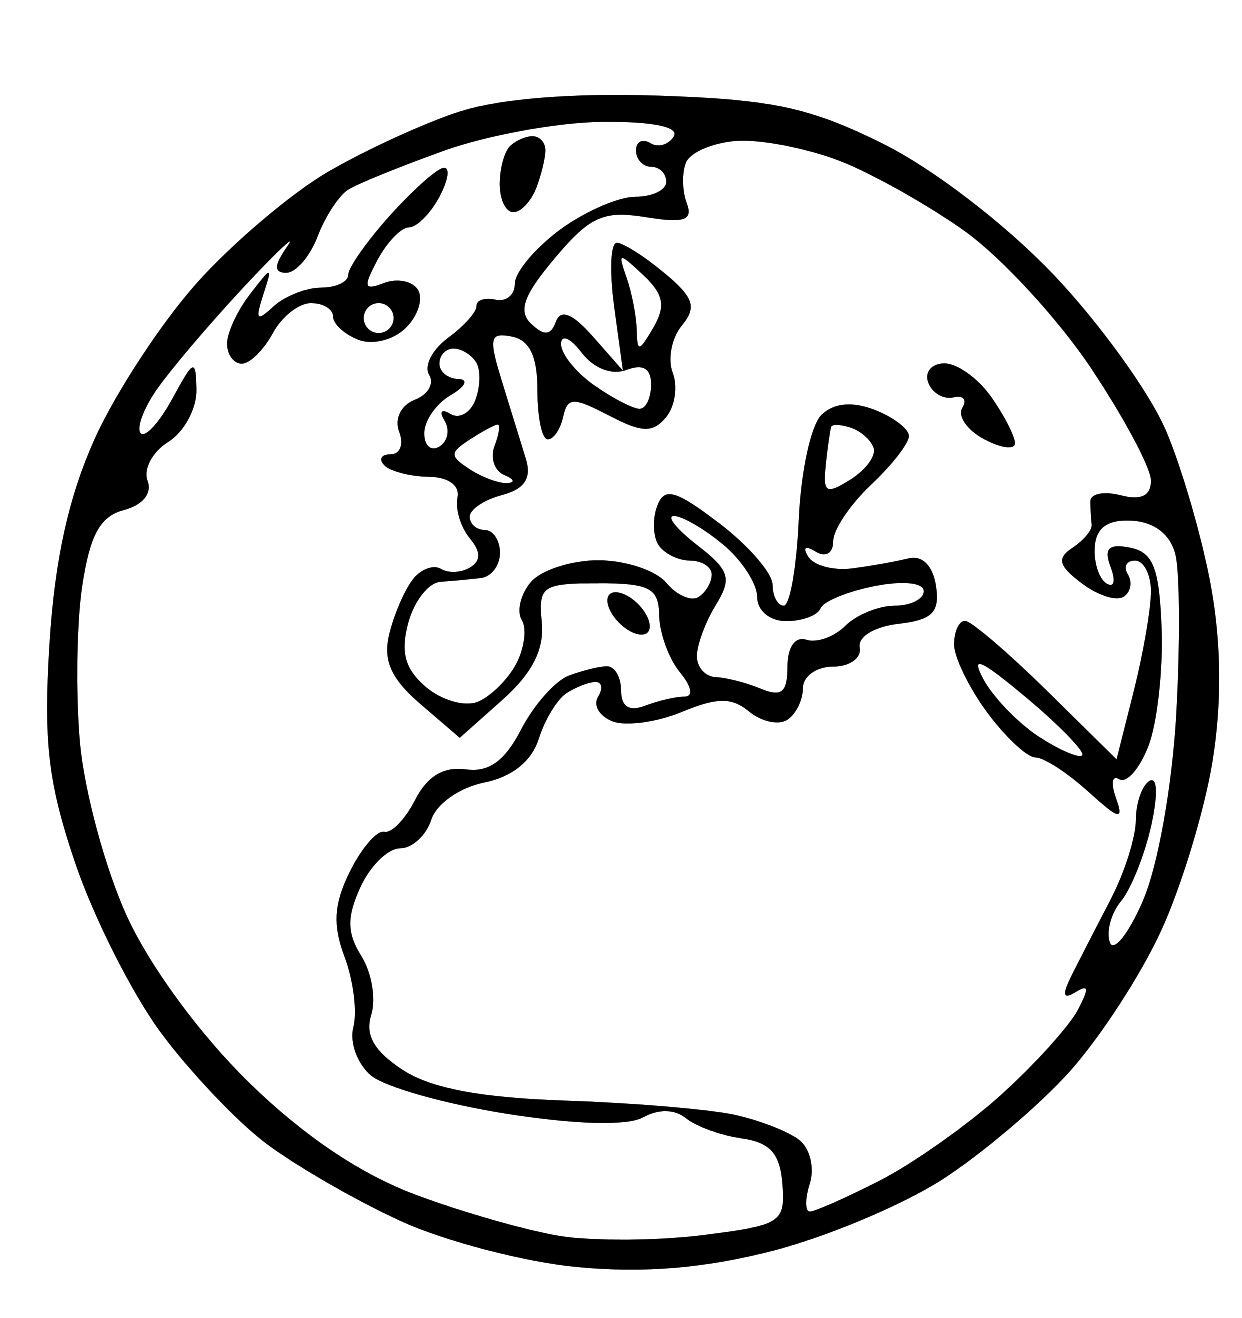 1242x1318 Earth Lineart Outline For Free Download